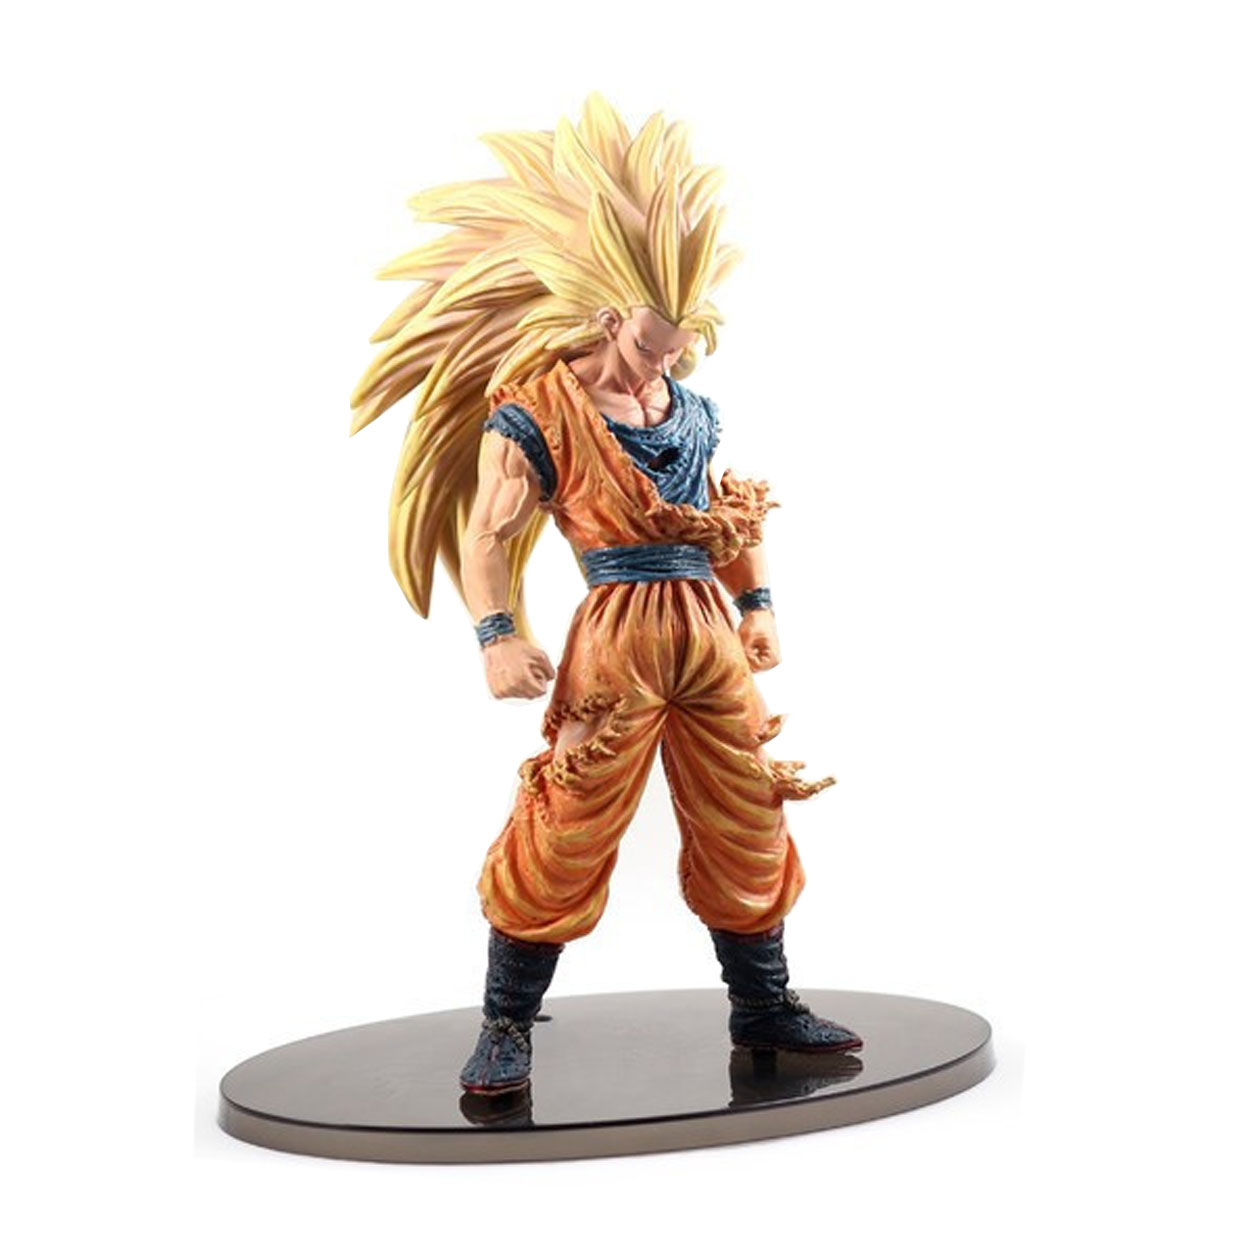 Chanycore 21CM Japanese Anime Dragon BALL Z Battle Damage Ver Super Saiyan 3 SON GOKU GOHAN Vegeta Action Figure PVC Model Toy anime figure 32cm dragon ball z super saiyan son goku lunar new year color limited ver pvc action figure collectible model toy